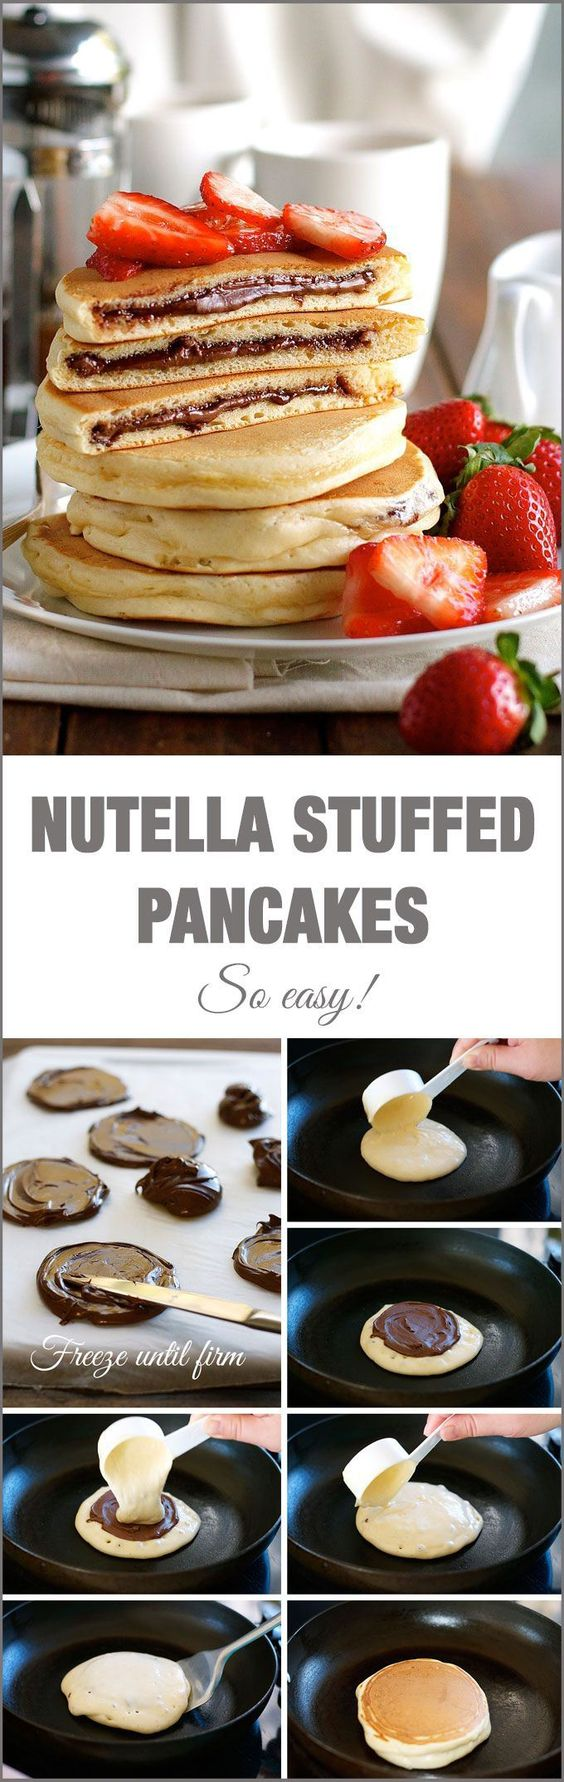 NUTELLA STUFFED PANCAKES - Pancakes stuffed with Nutella! Best eaten warm but still fabulous at room temperature. Great treat for special occasions!